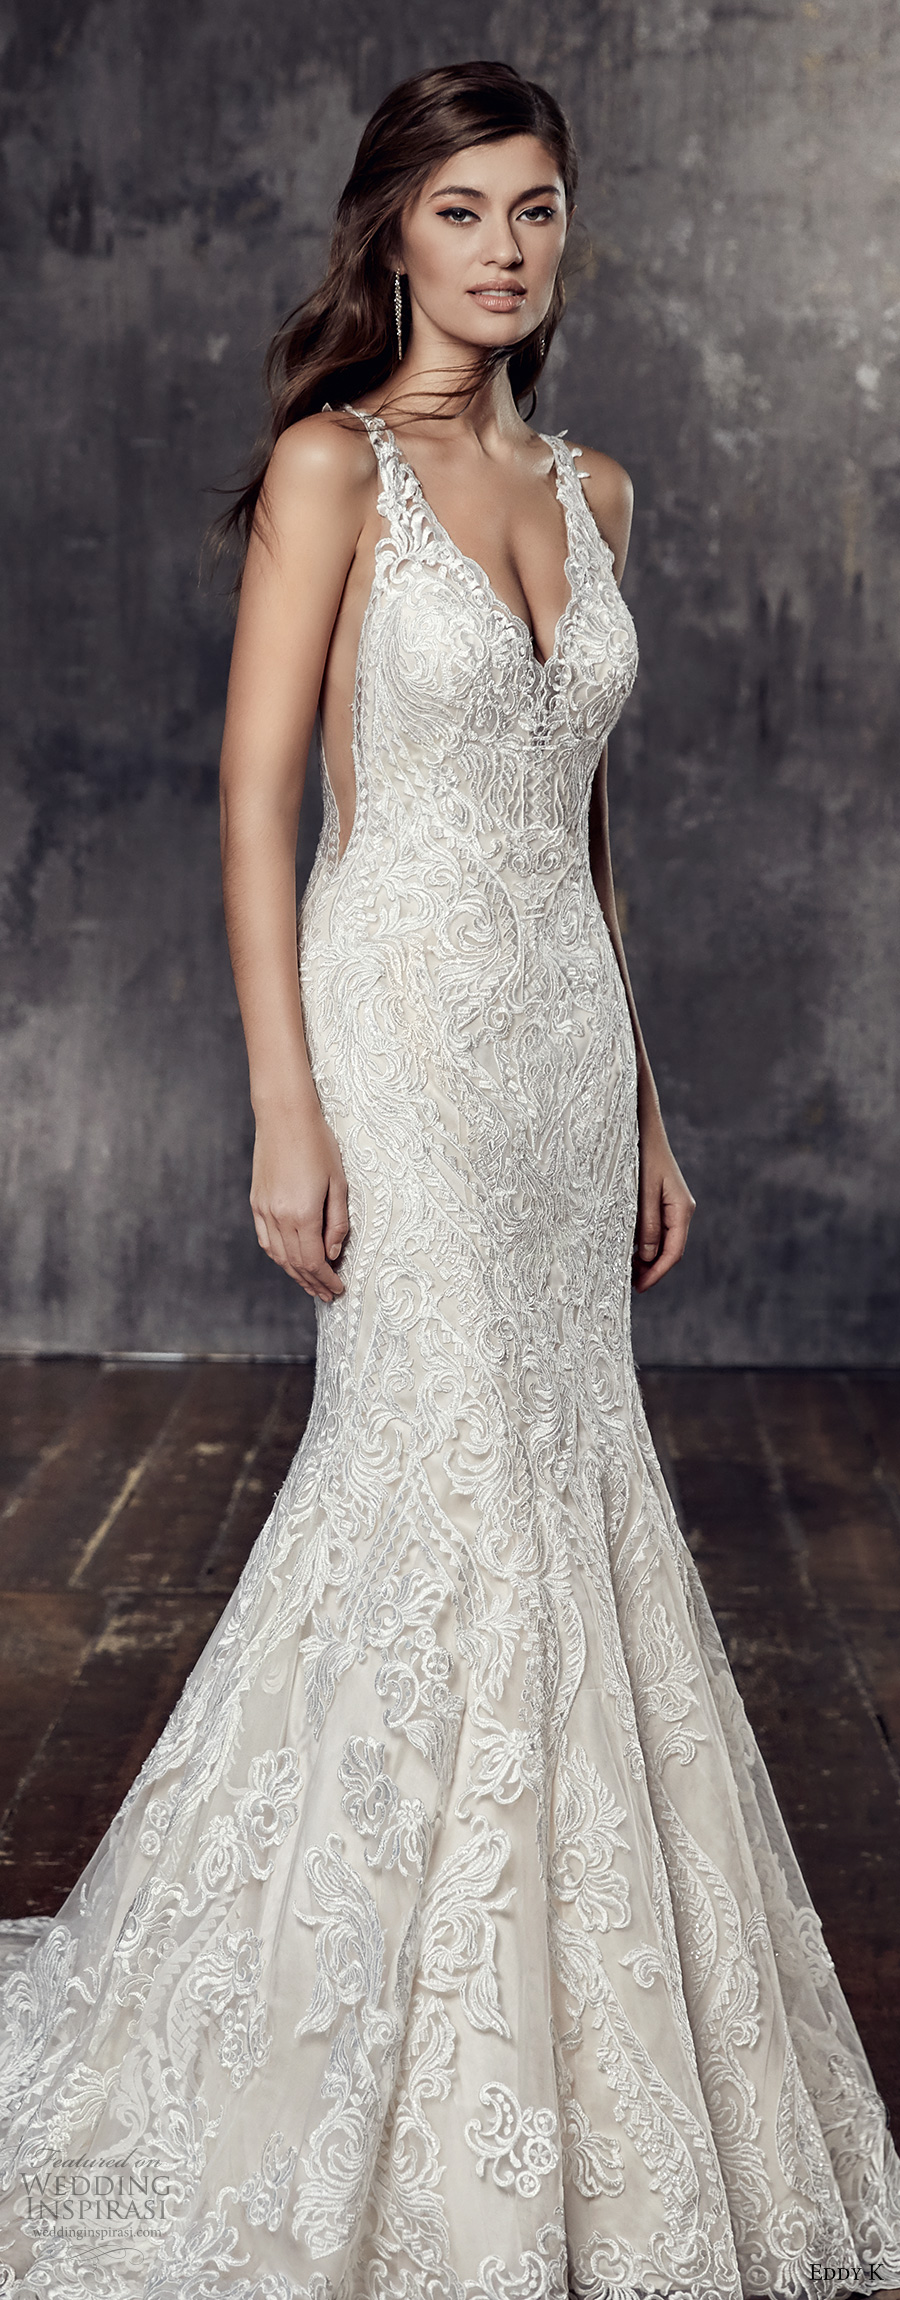 Elegant Lace Wedding Dresses 2018 Discount Wedding Dresses